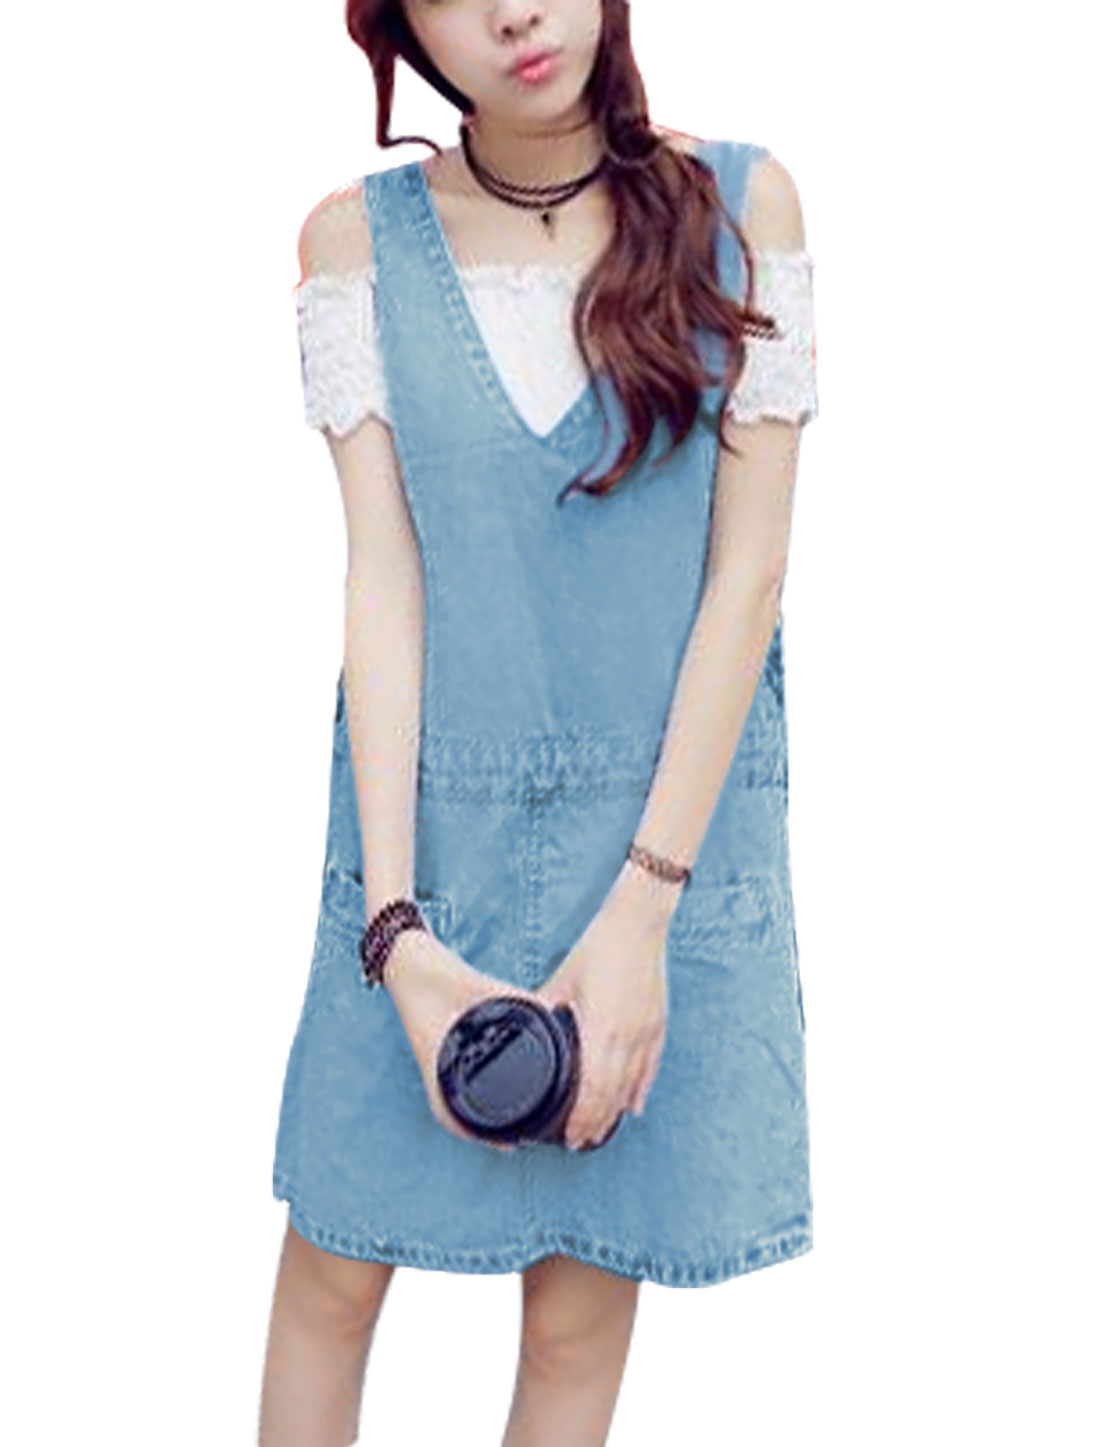 Ladies Adjustable Strap Sleeveless Pockets Casual Suspender Dress Sky Blue XS